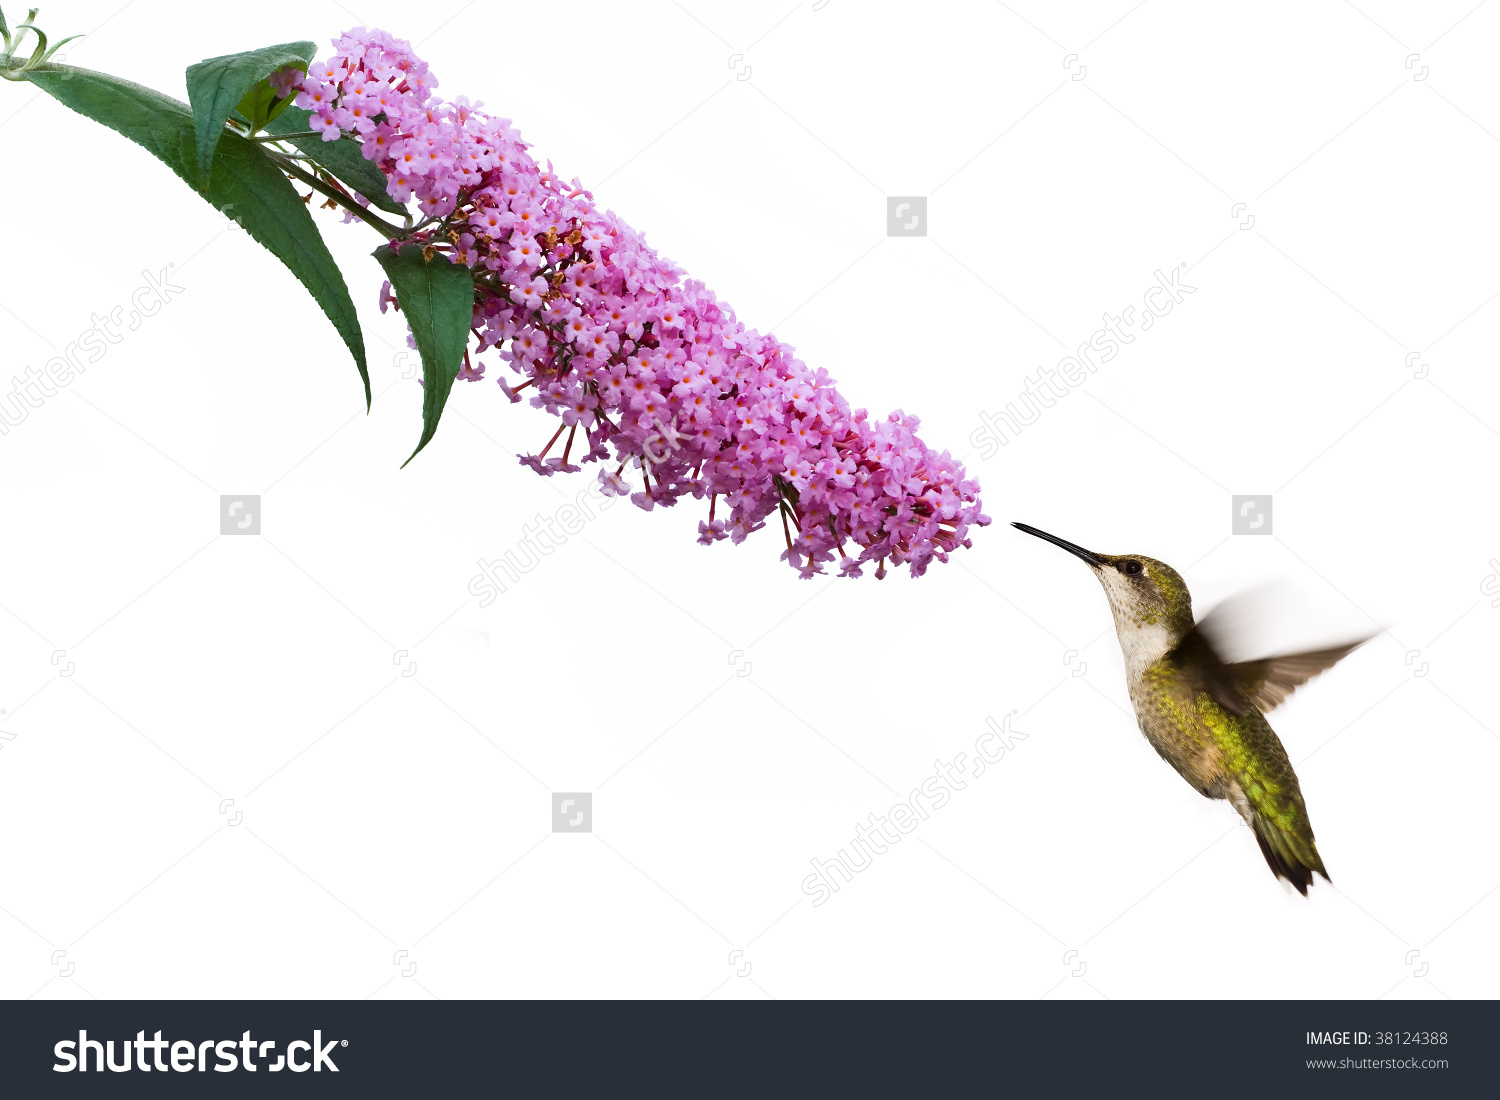 Female Ruby Throated Hummingbird Hovers Near Pink Butterfly Bush.